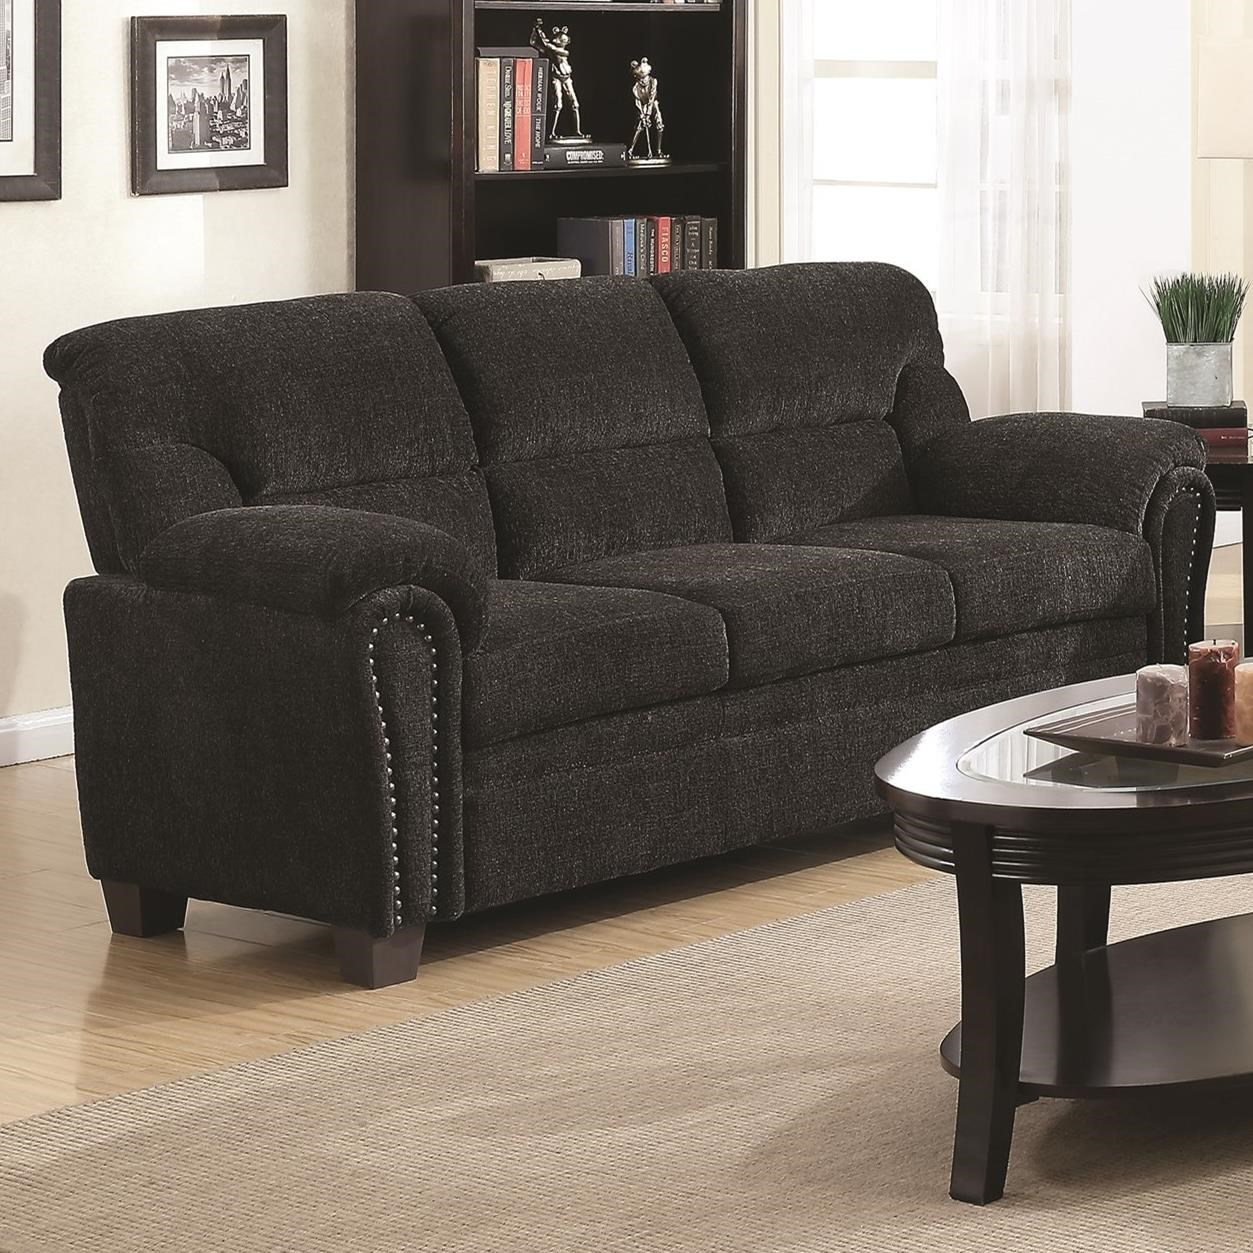 Coaster Clemintine by Coaster Sofa - Item Number: 506574